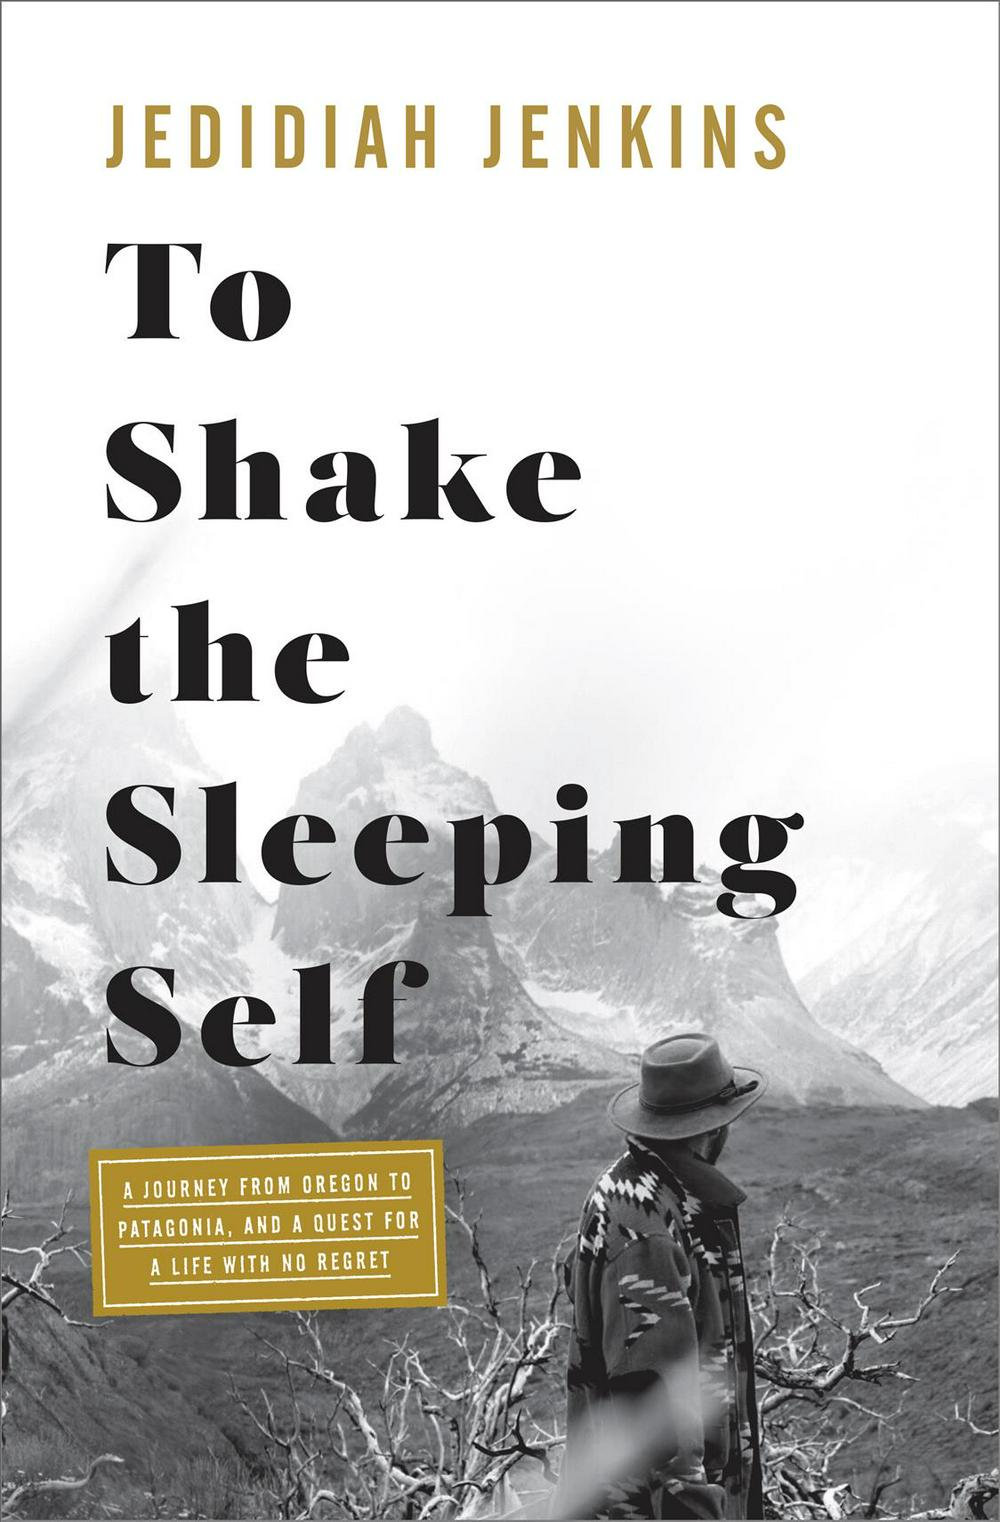 To Shake the Sleeping Self: A 10,000-Mile Journey from Oregon to Patagonia, and One Man's Quest to Wake Up the Soul